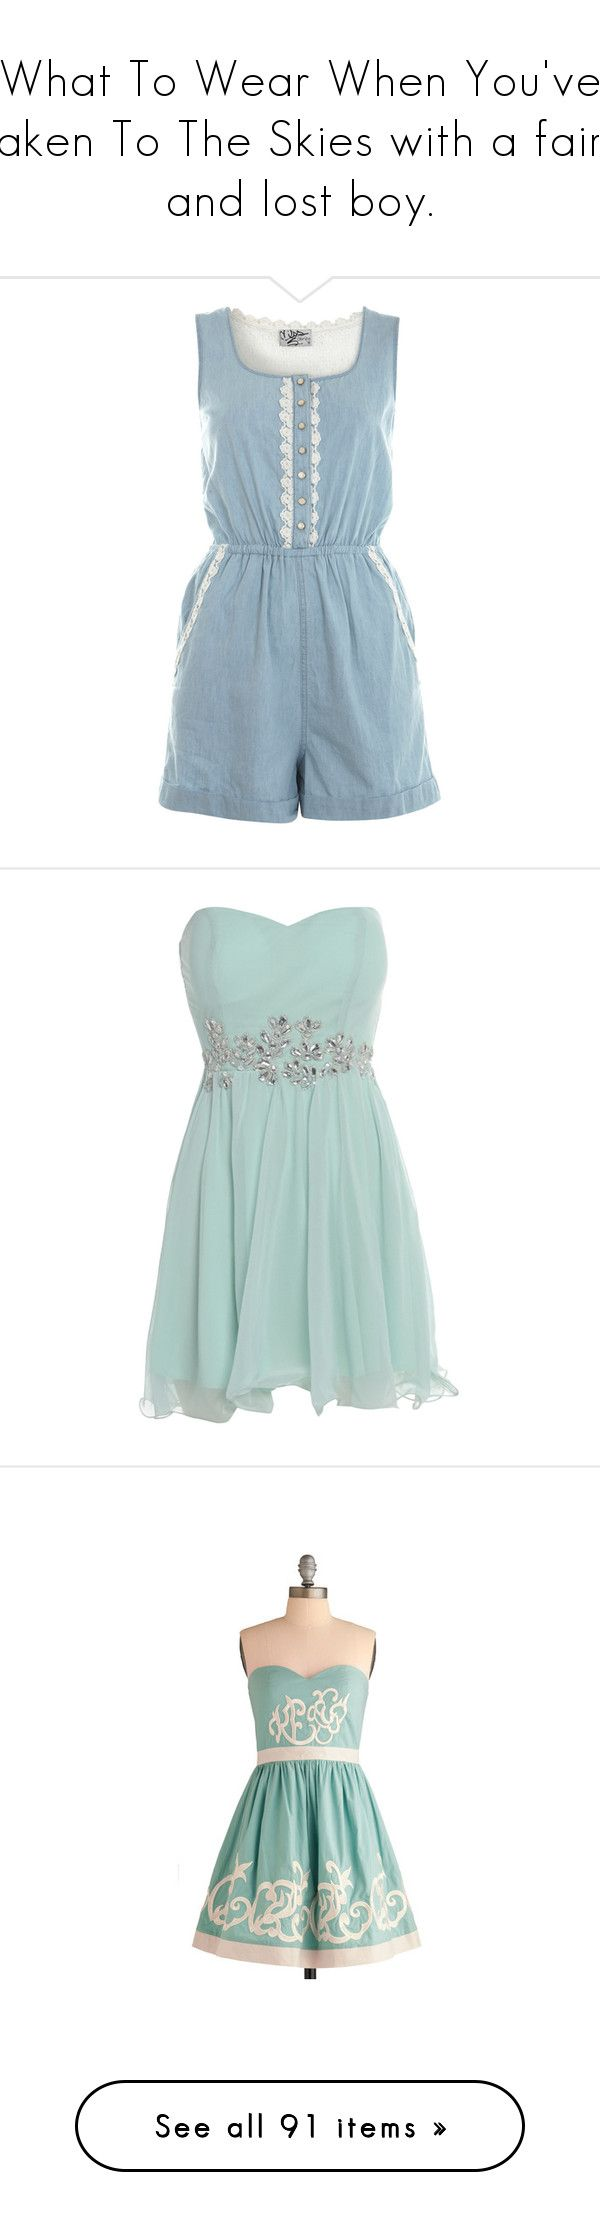 """""""What To Wear When You've Taken To The Skies with a fairy and lost boy."""" by nthemermaid ❤ liked on Polyvore featuring jumpsuits, rompers, dresses, playsuits, jumpsuit, denim, blue jumpsuit, playsuit romper, blue romper and romper jumpsuit"""